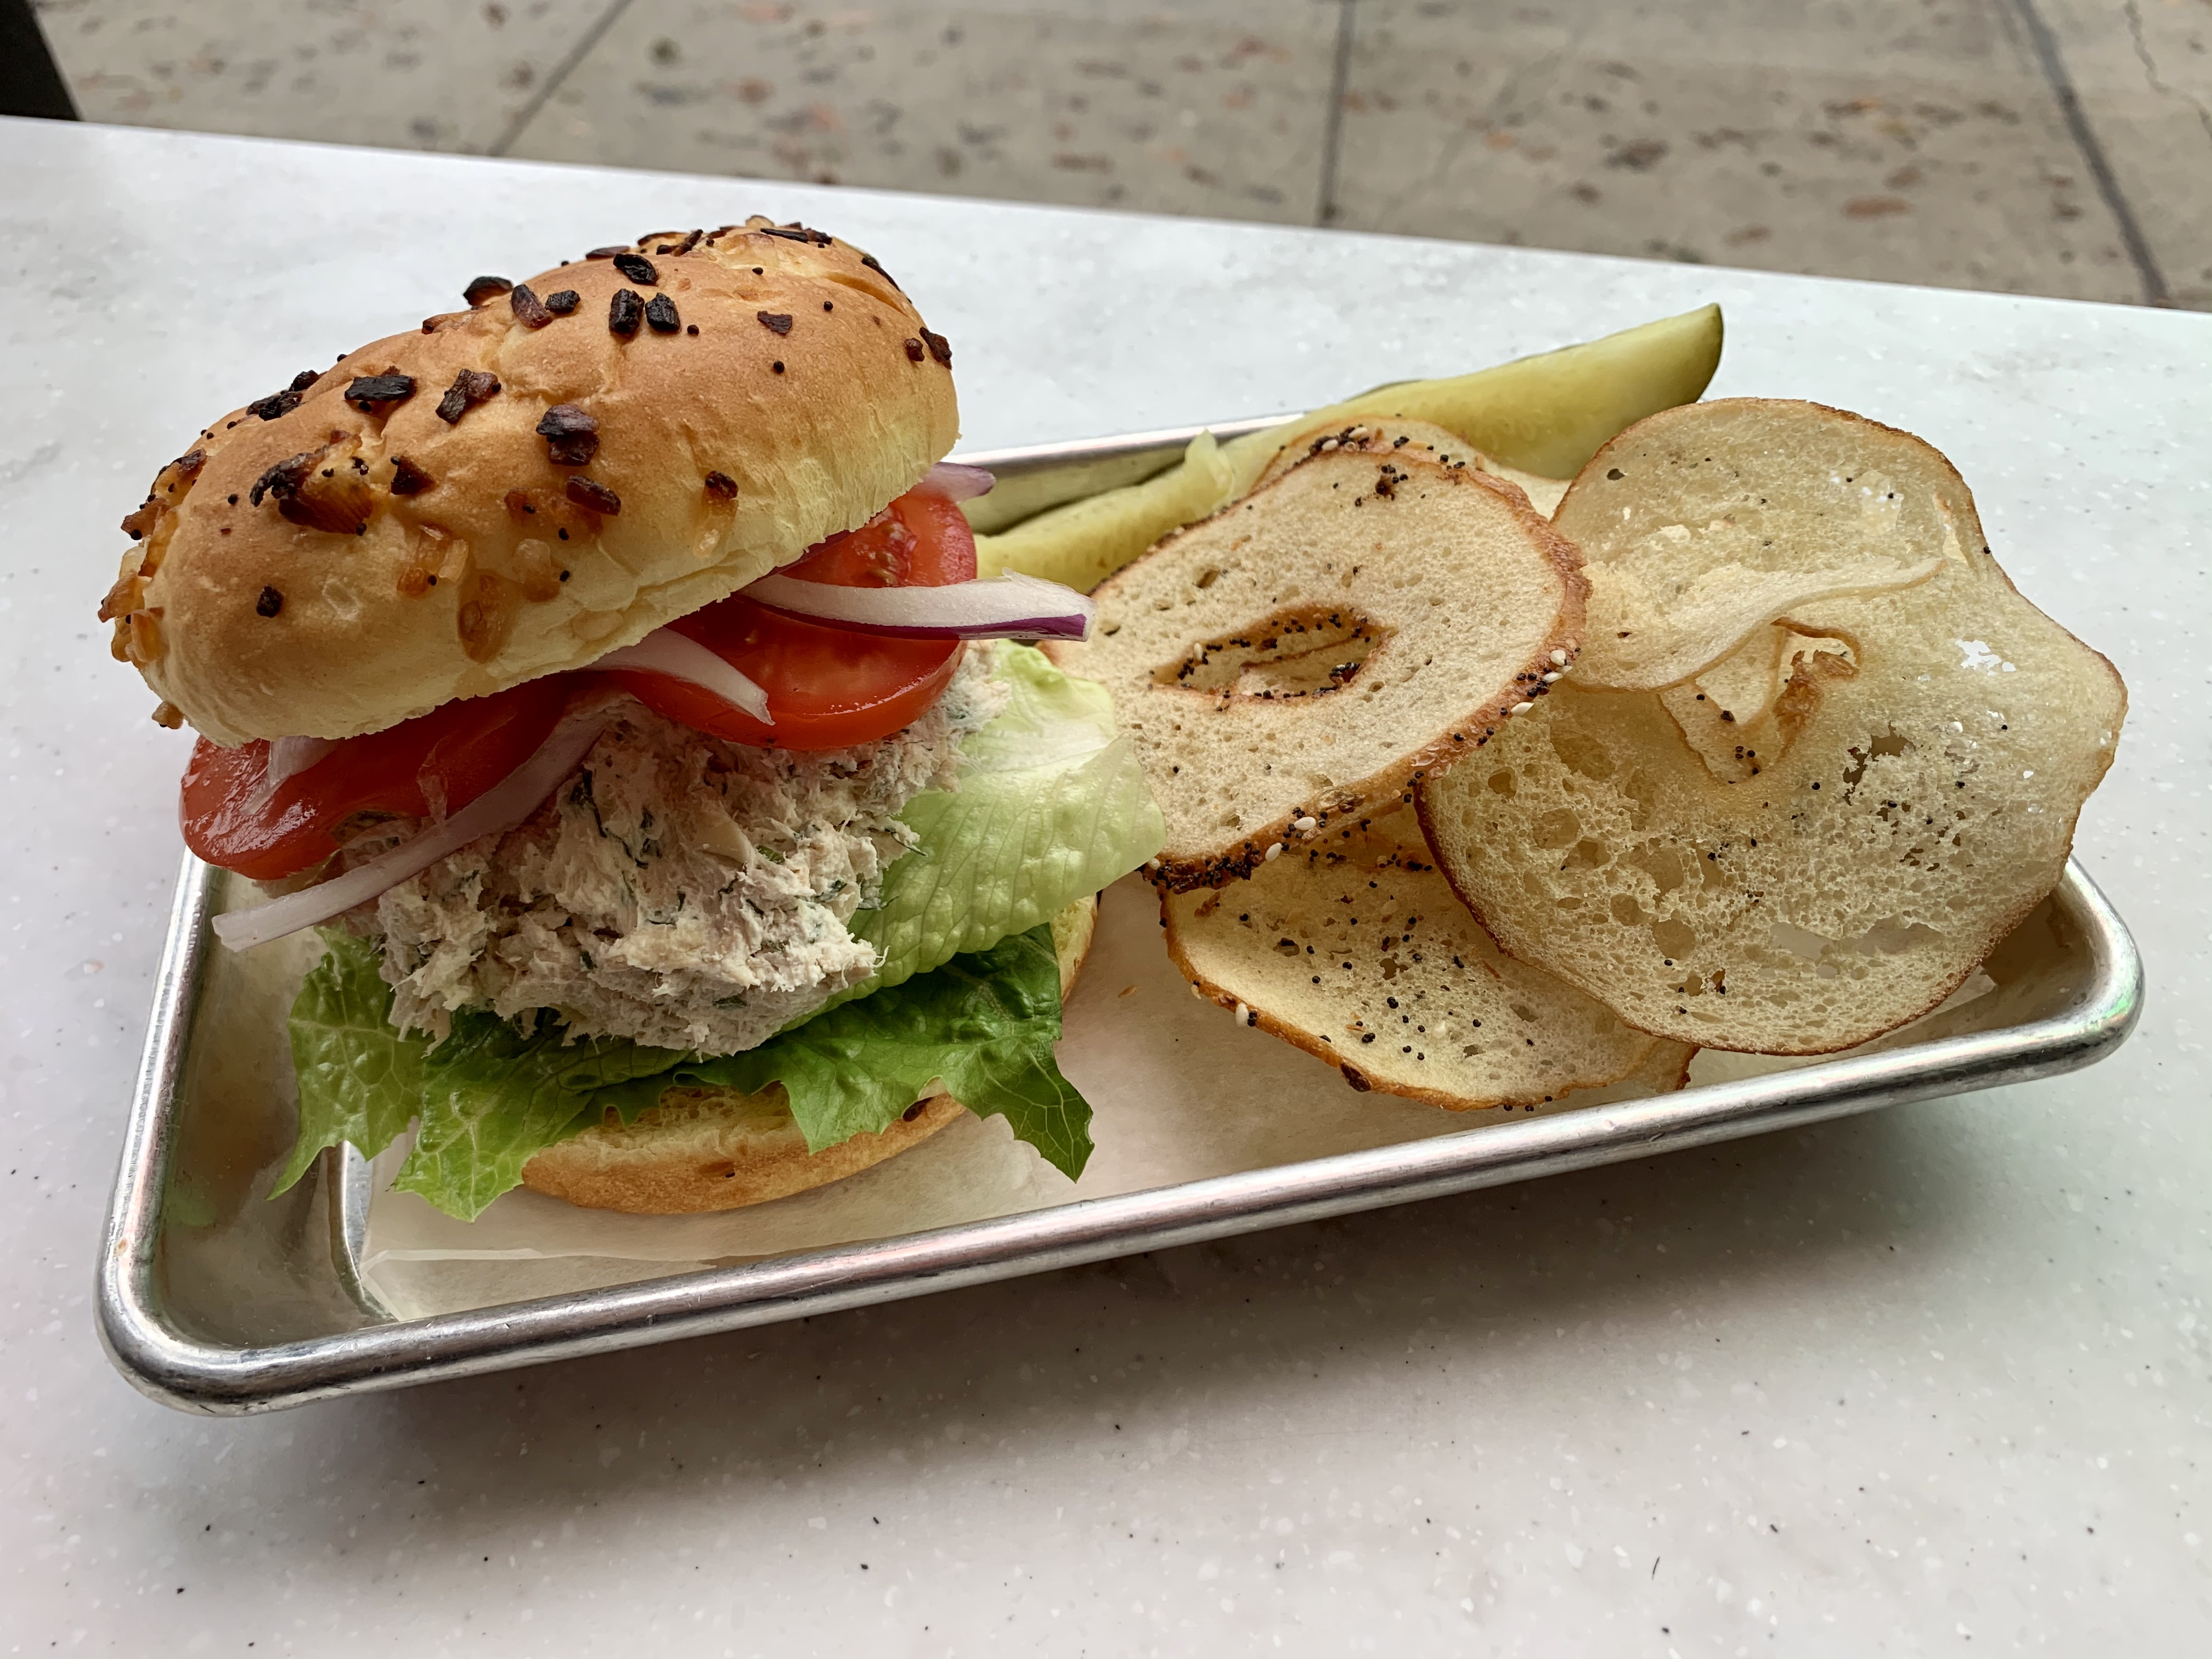 A vegan smoked whitefish sandwich on a metal tray.